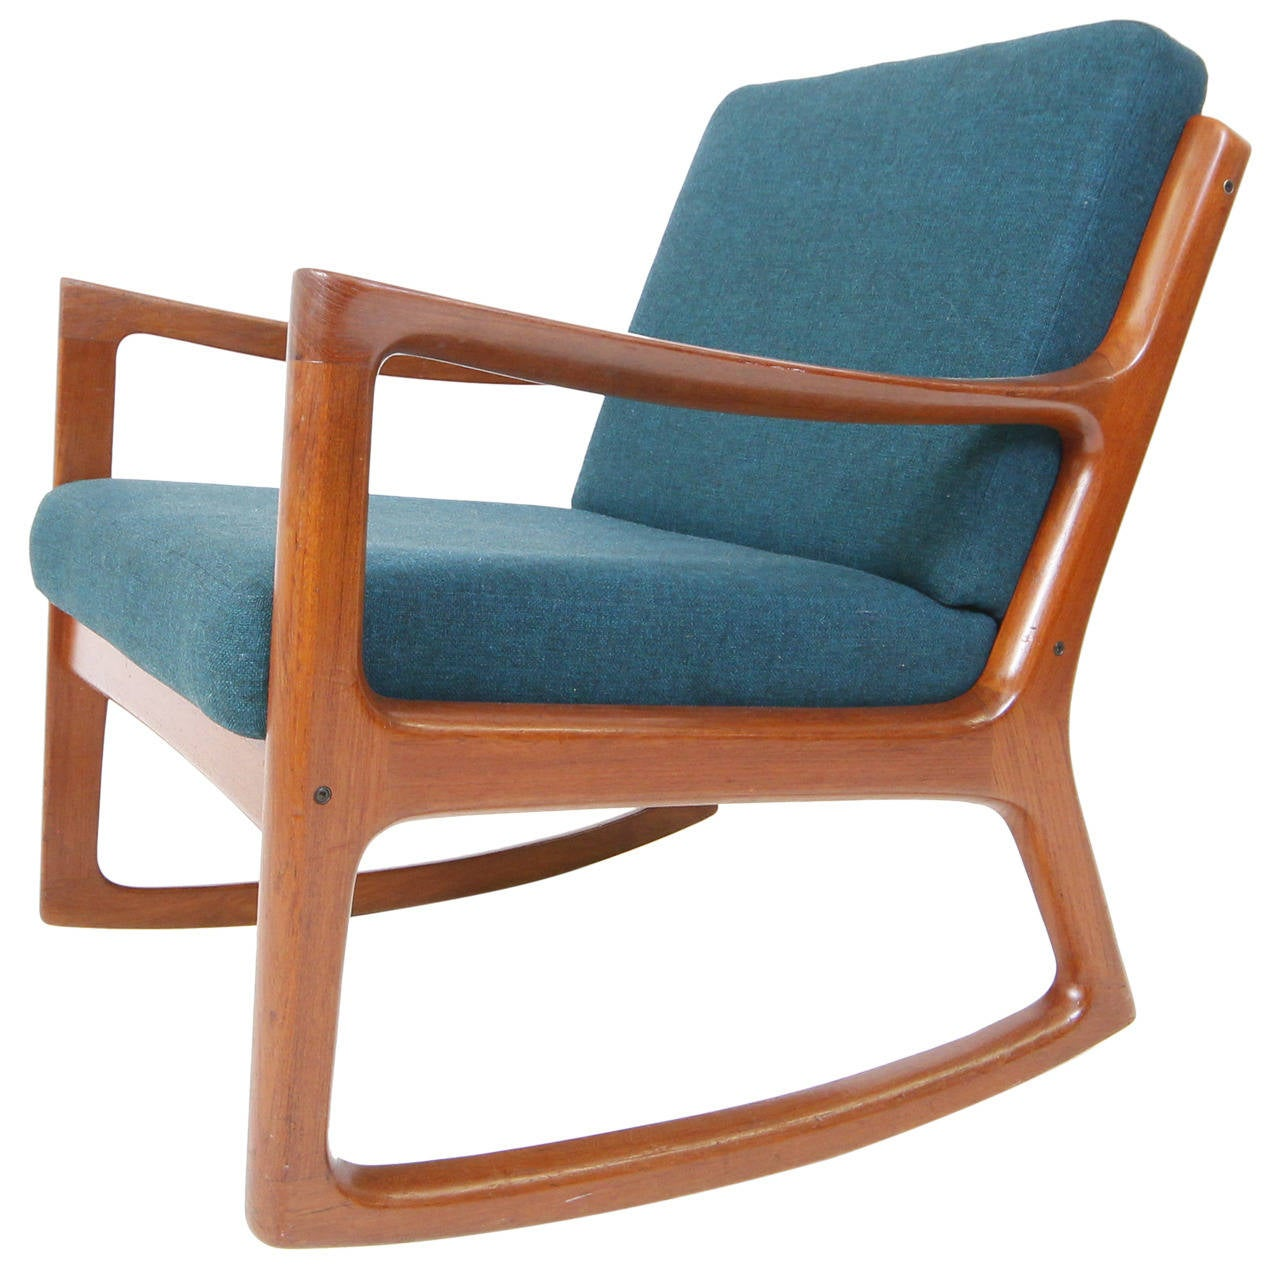 Chair design, Rocking chairs and Contours on Pinterest